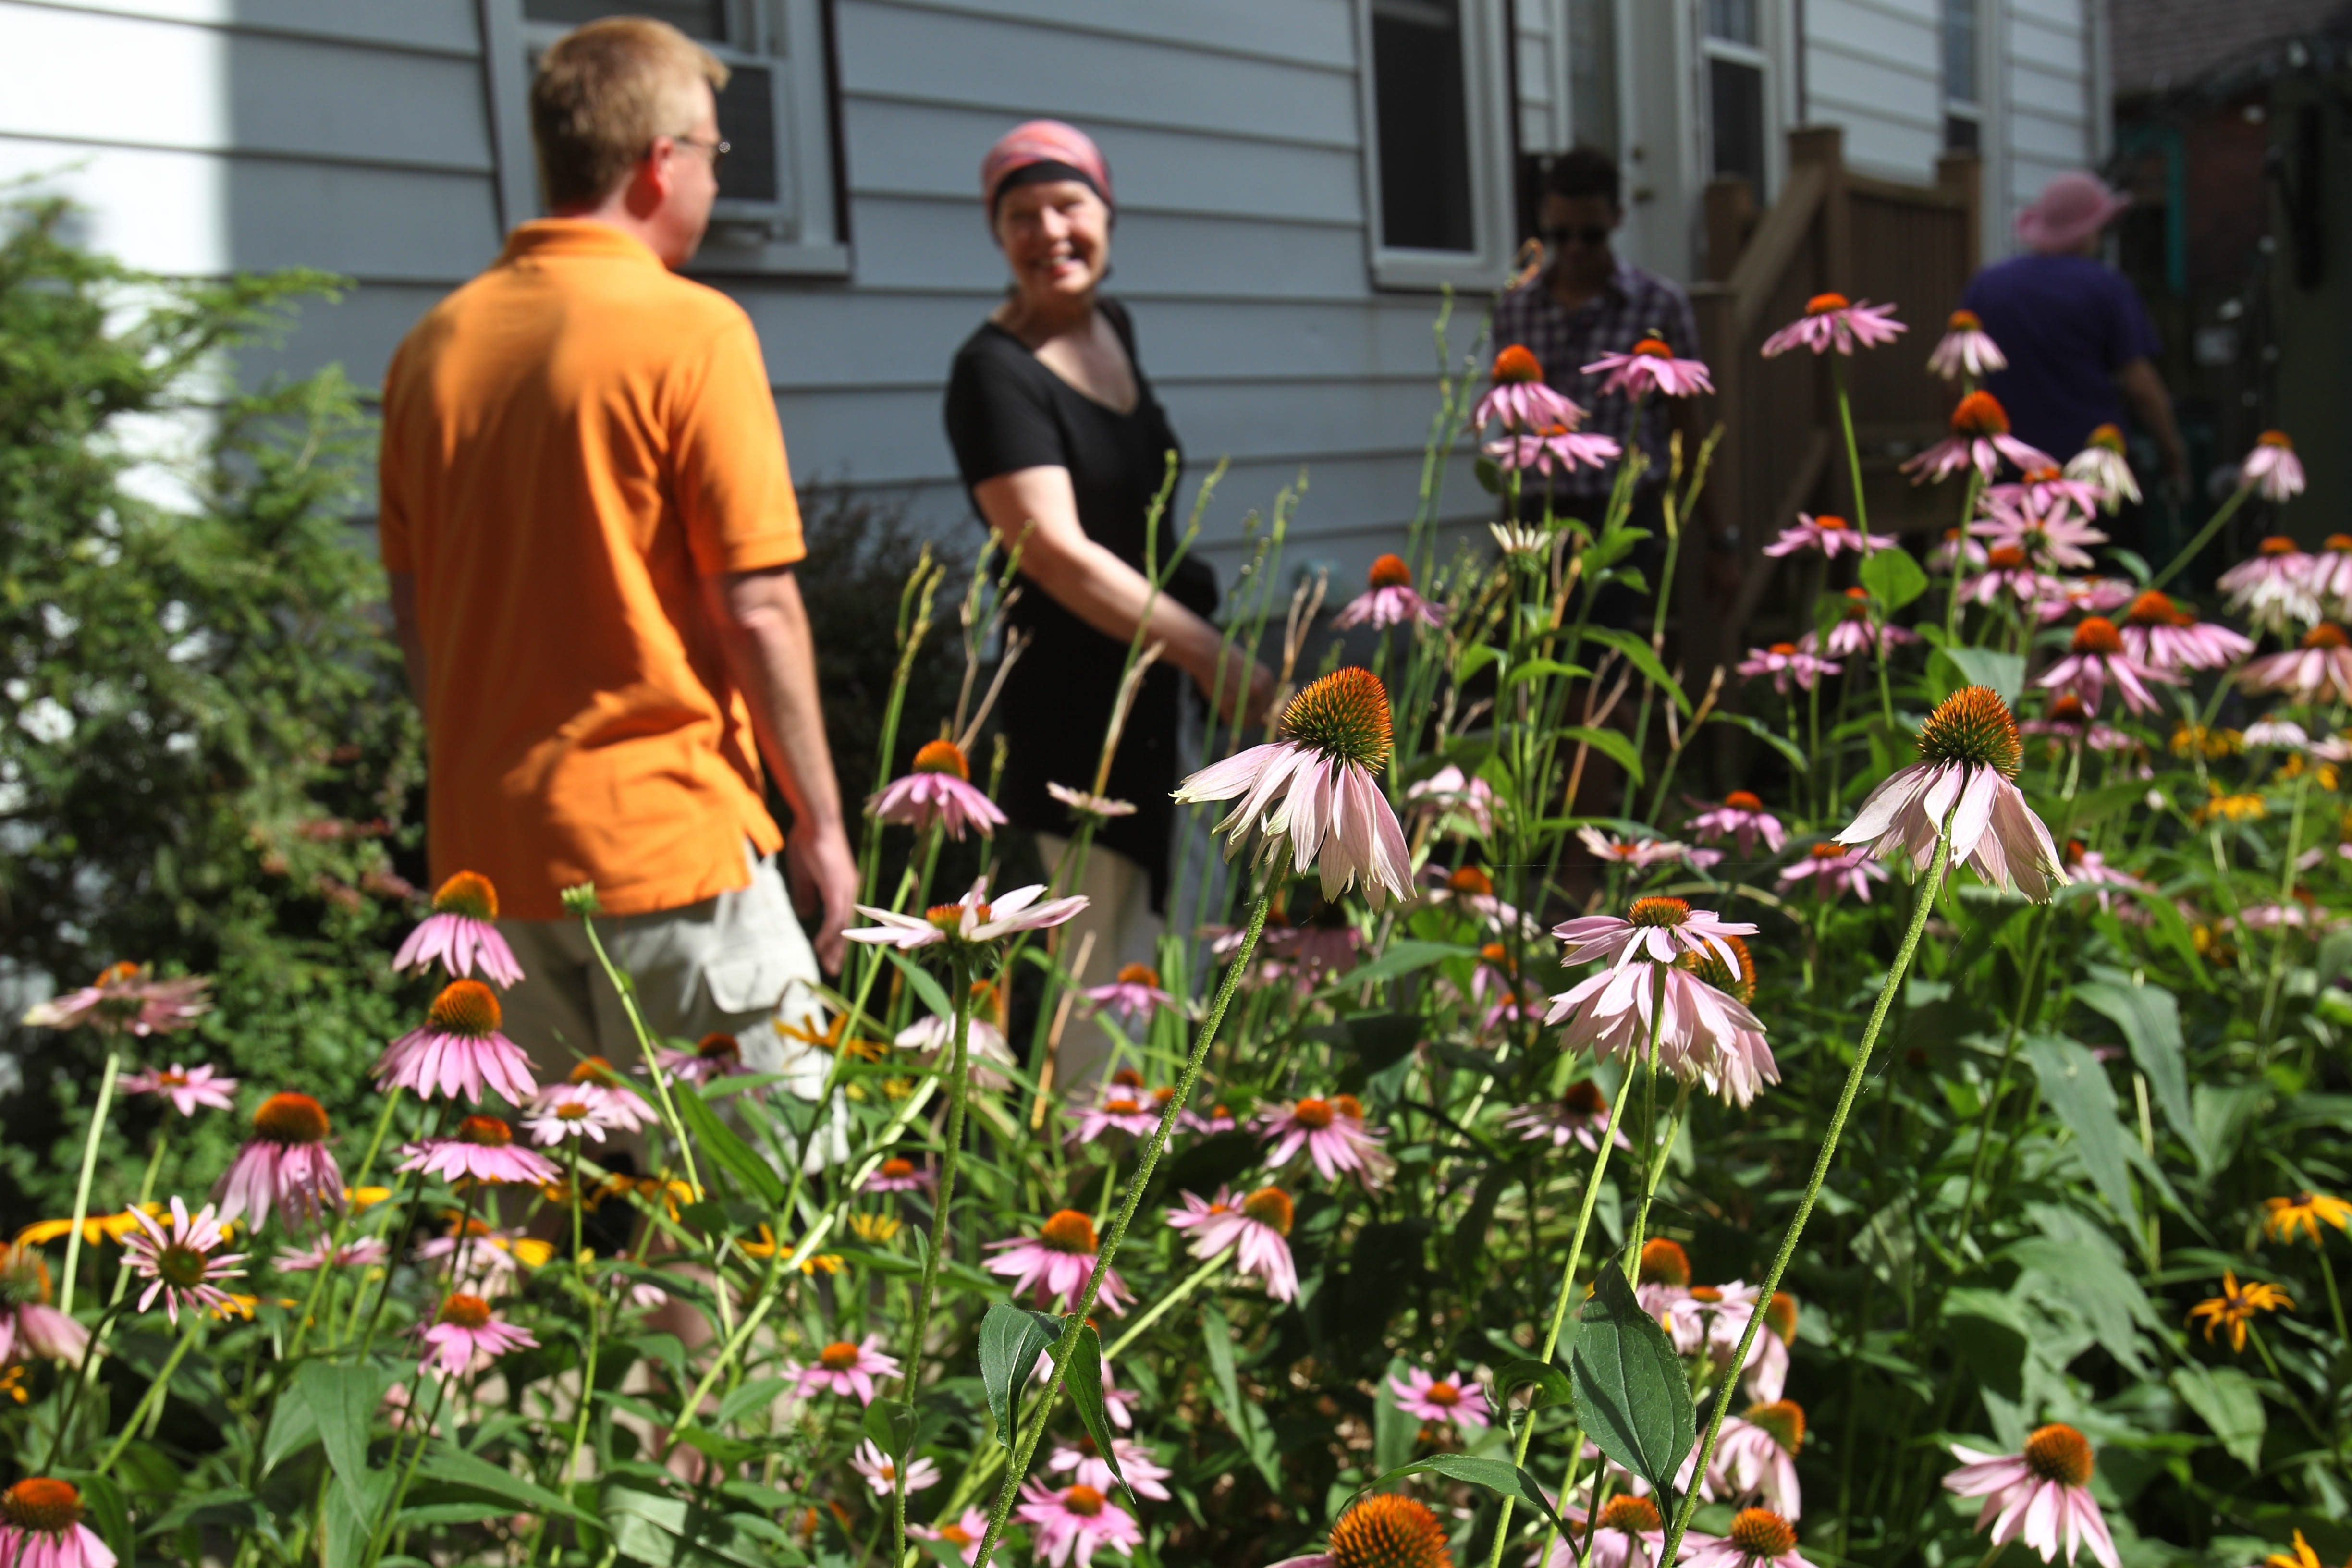 It was lovely weather for the Garden Walk's second day at Ellie Dorritie's front yard on Summer Street. Many of the 60,000 estimated attendees, a larger turnout than last year's, according to organizers, stopped to admire Dorritie's garden during the two-day event.